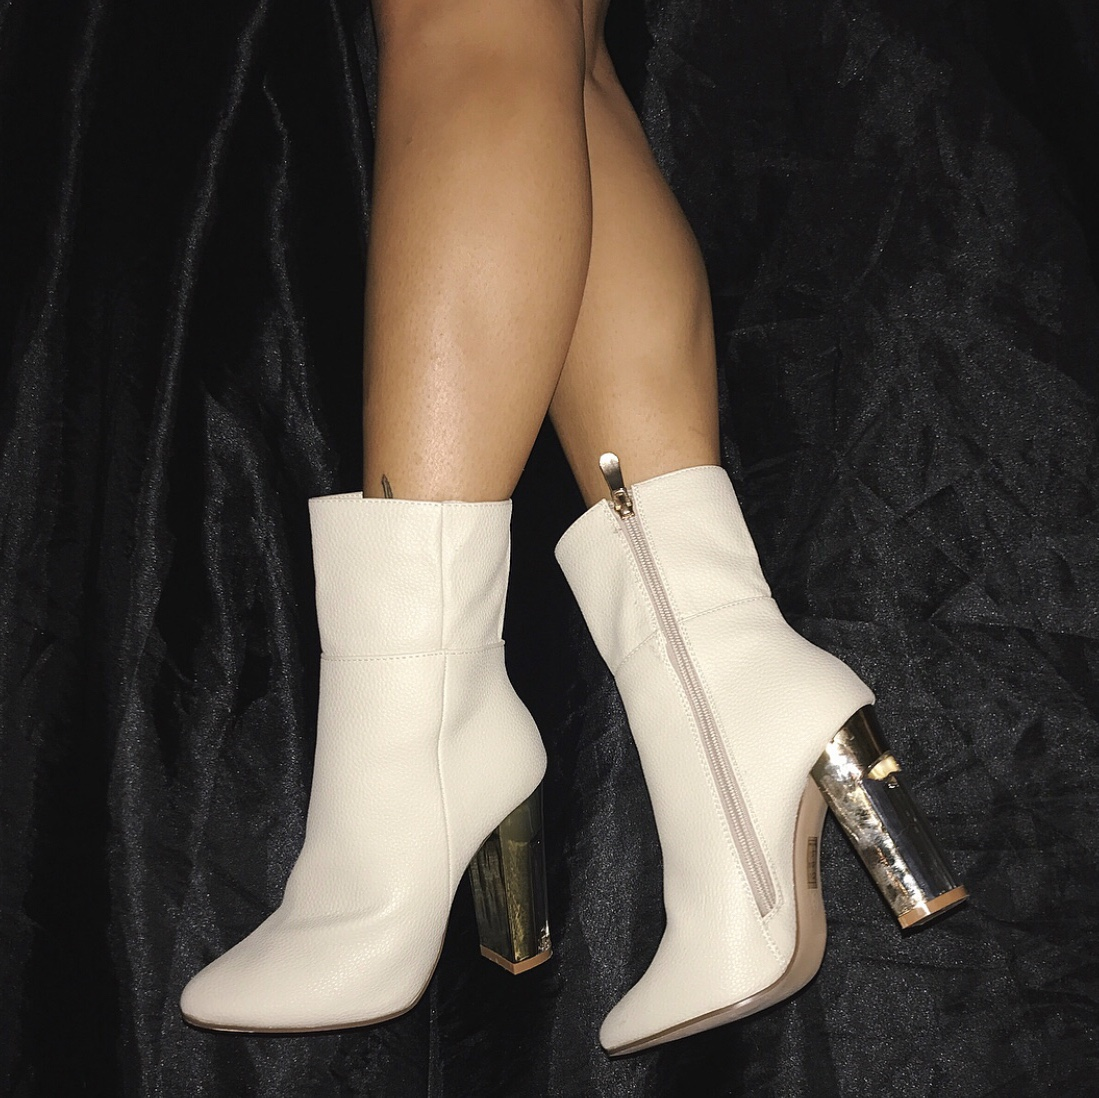 White/Cream Leather ankle boots with a